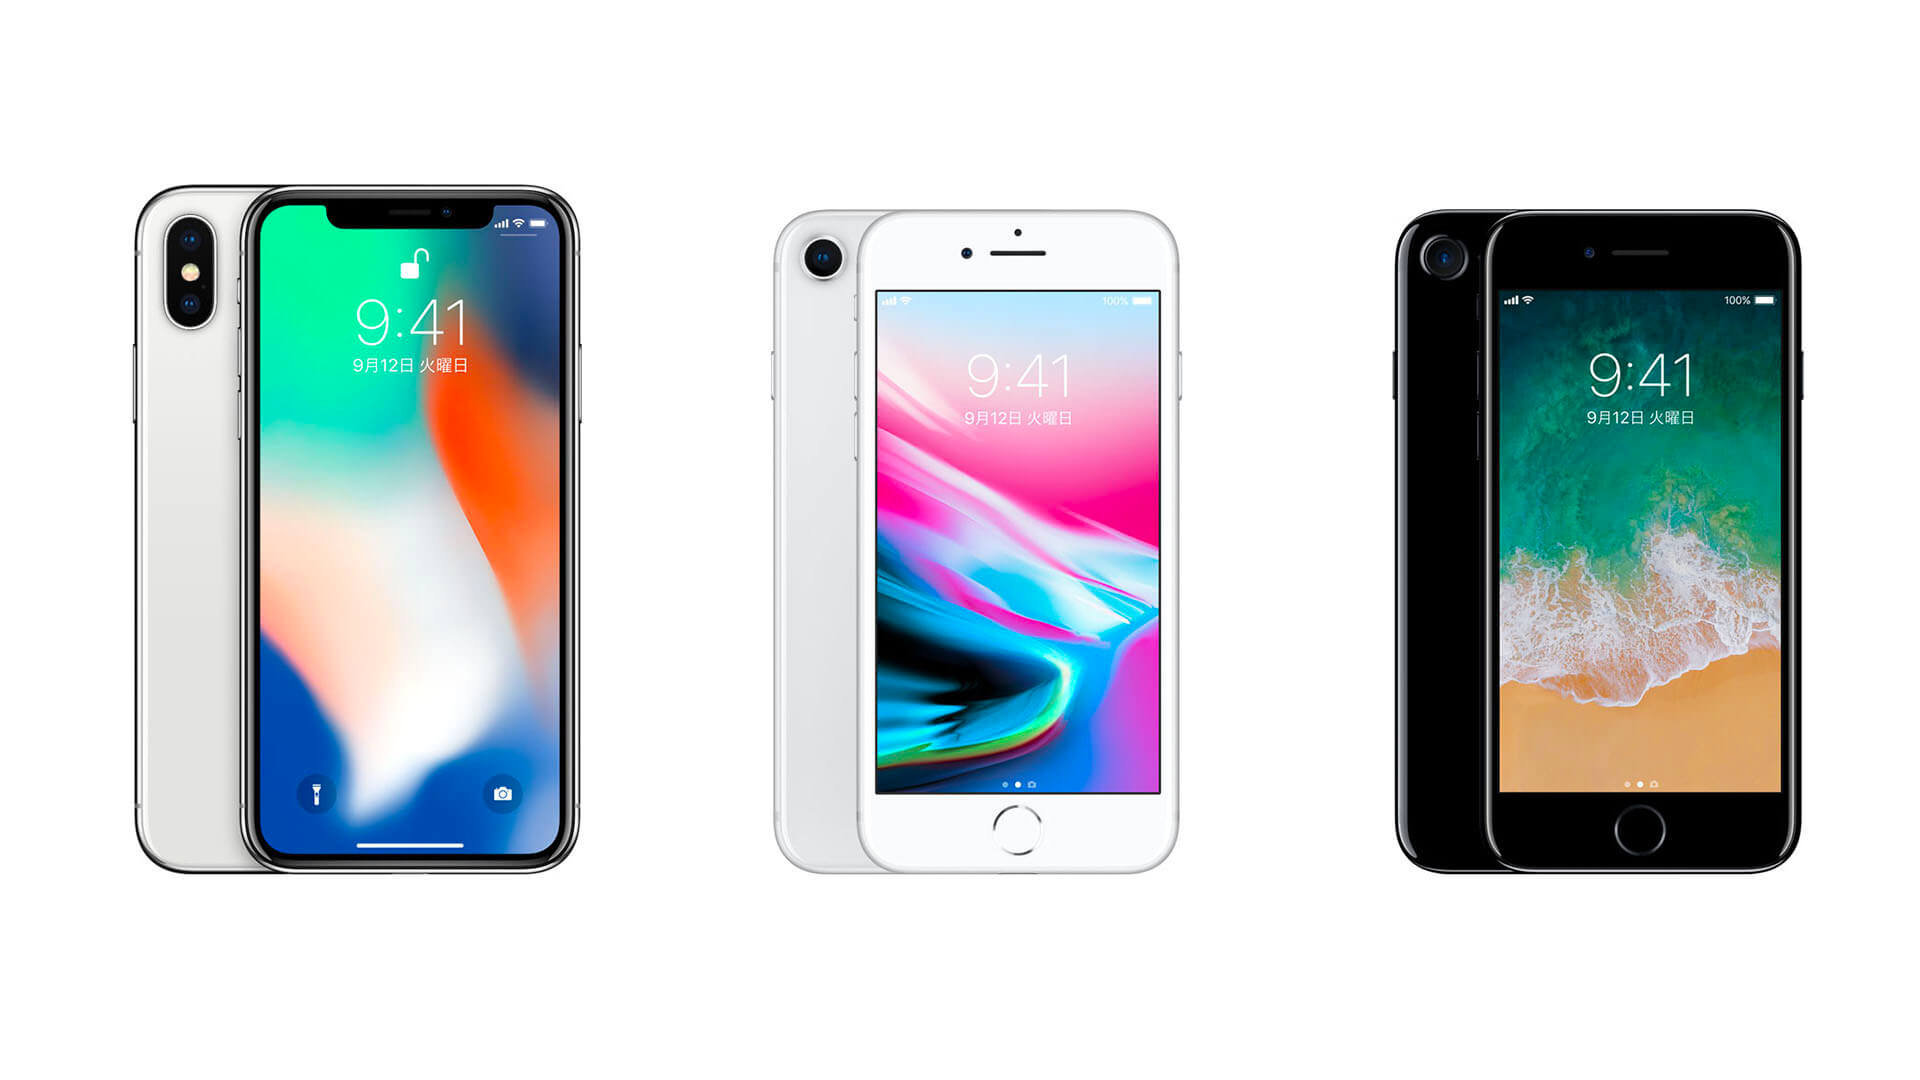 iPhoneX / iPhone 8 / iPhone 8 Plus / iPhone 7 / iPhone 7 スペック比較